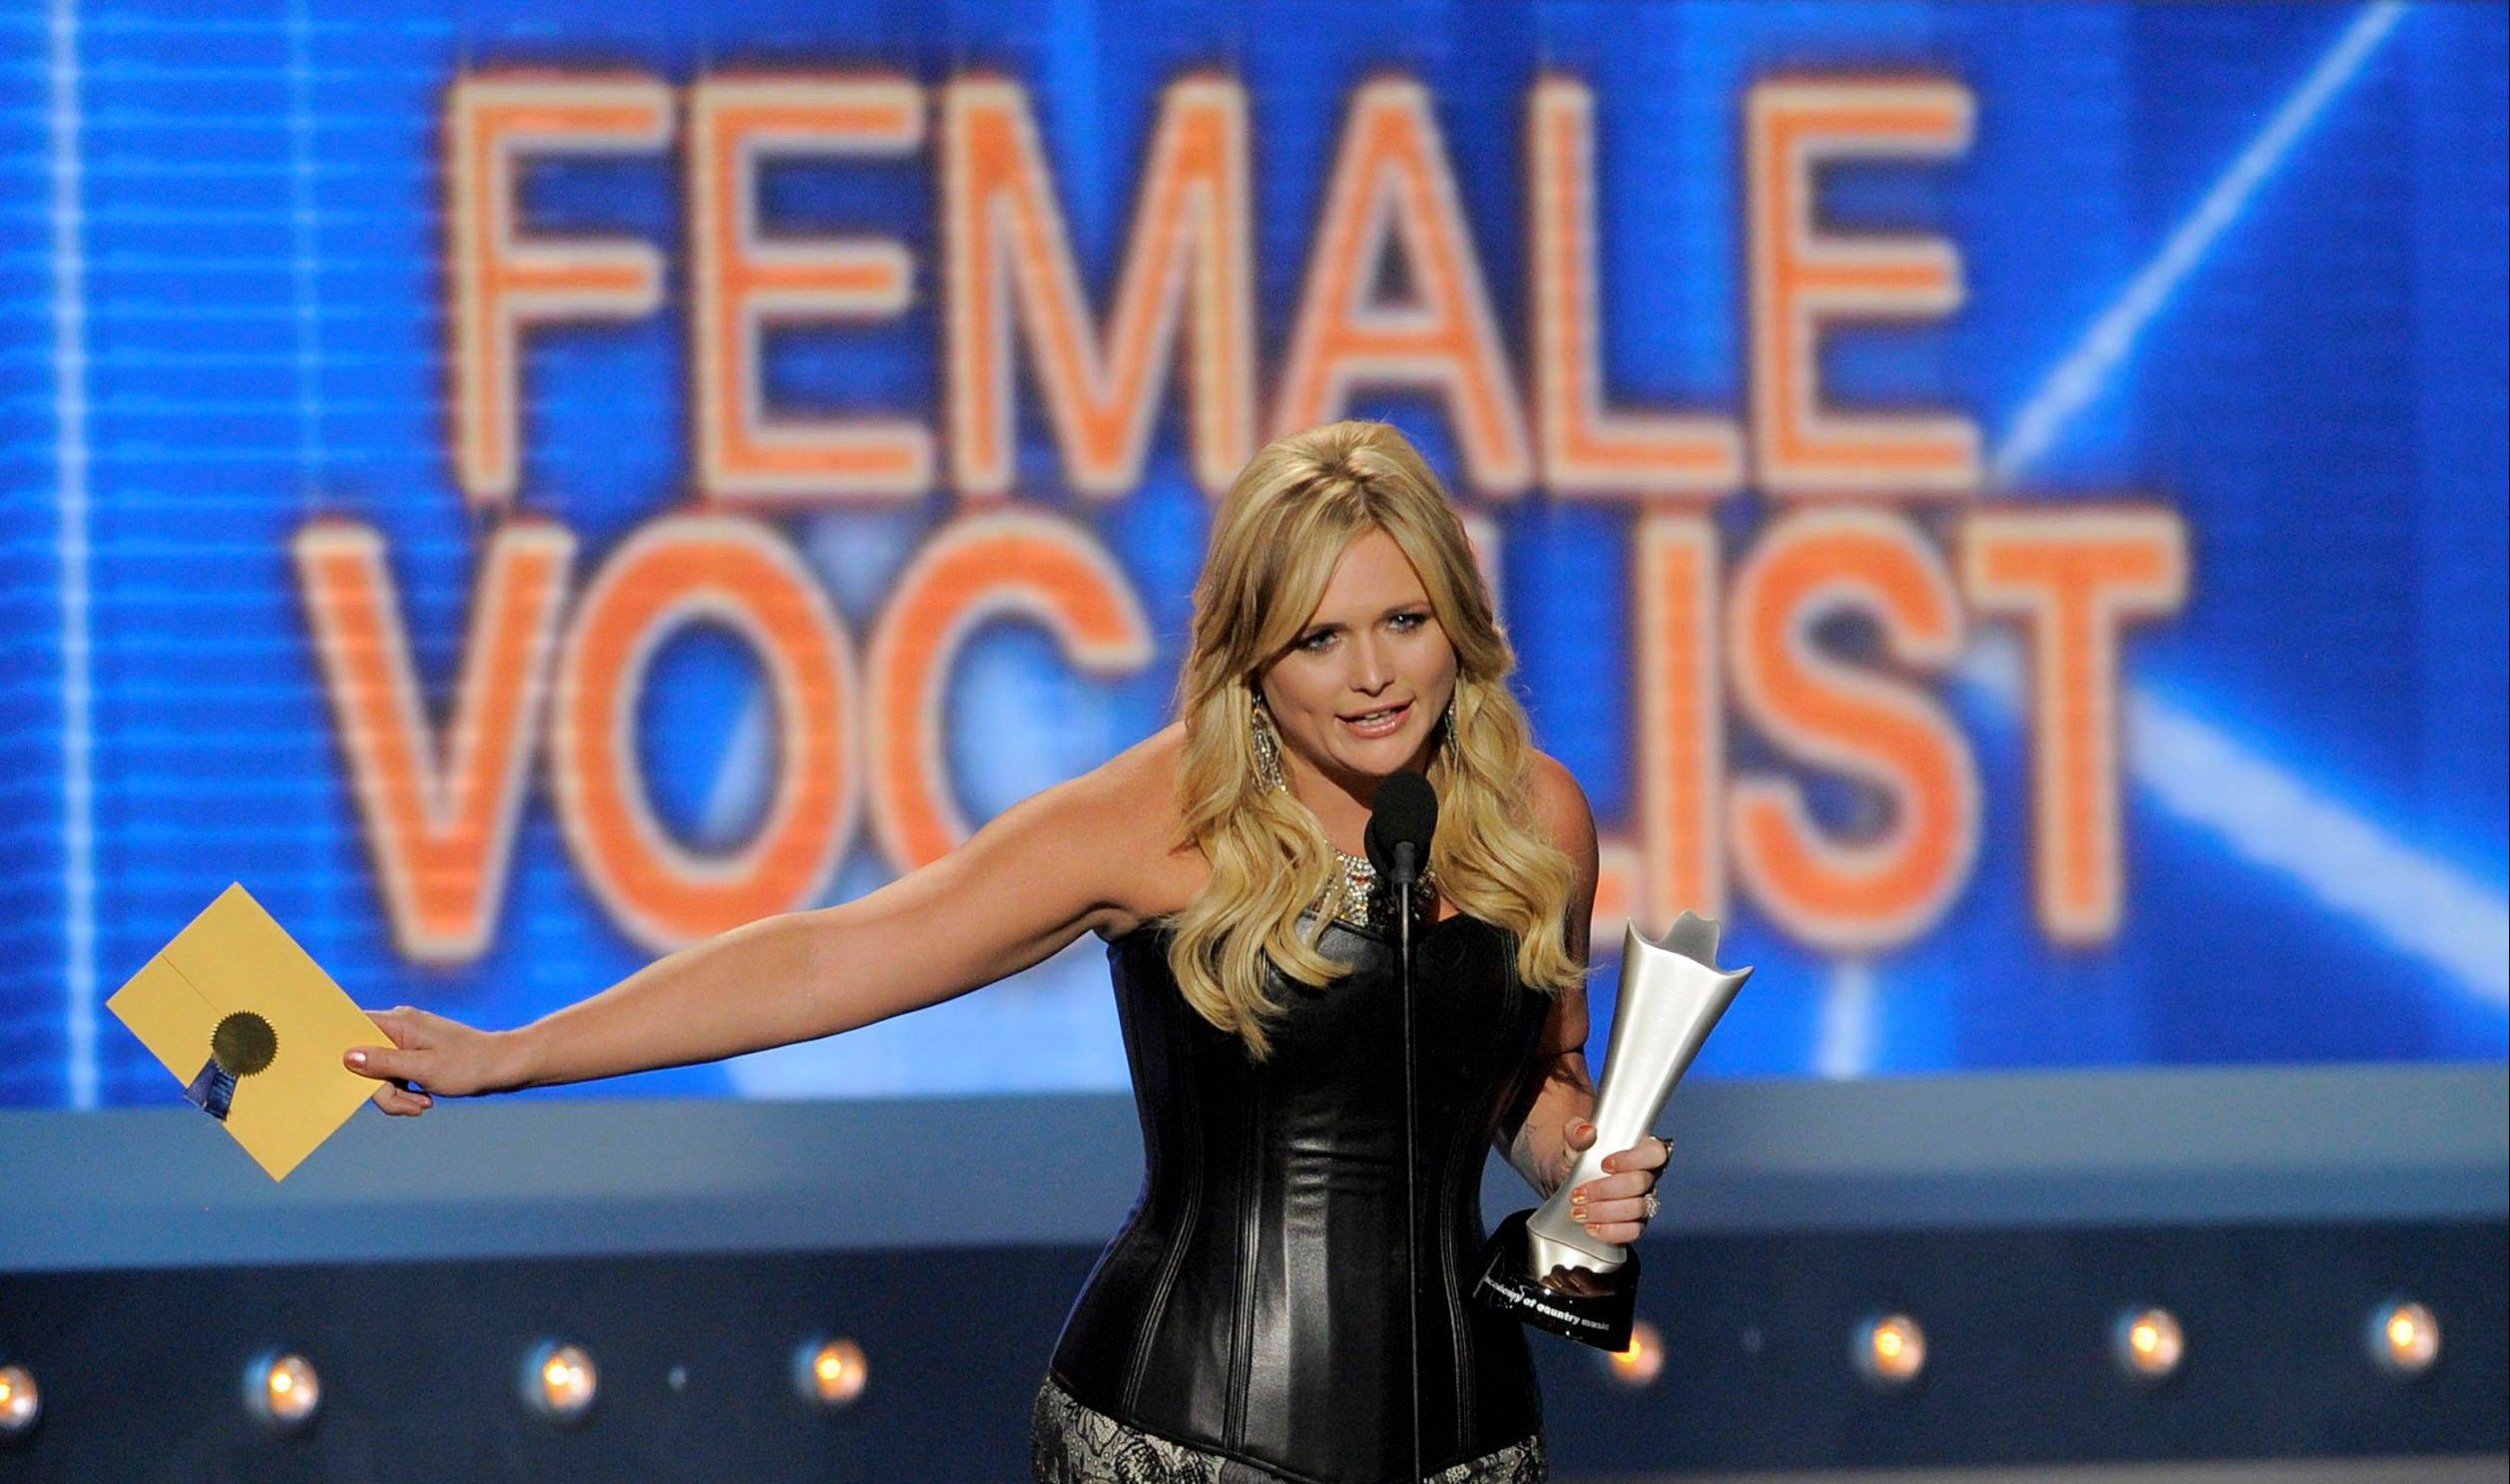 Miranda Lambert accepts the award for female vocalist of the year. Lambert also won album of the year.